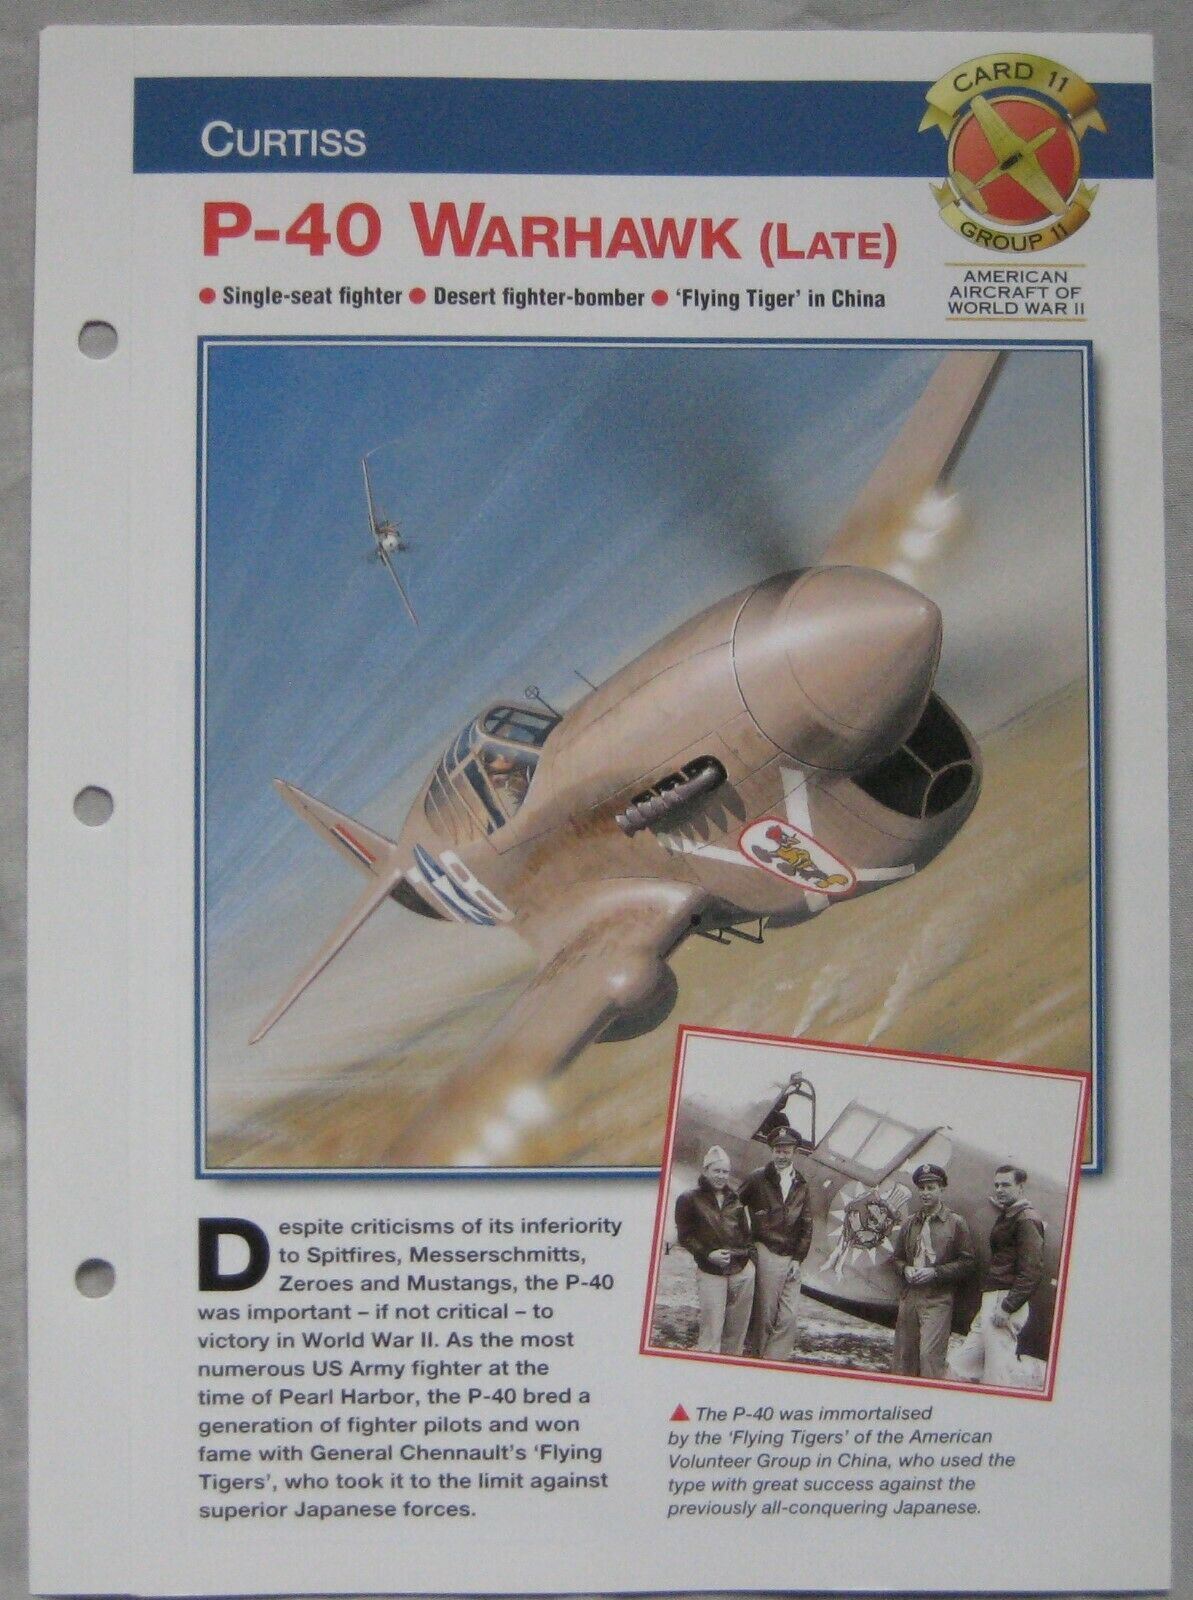 Aircraft of the World Card 11 , Group 11 - Curtiss P-40 Warhawk